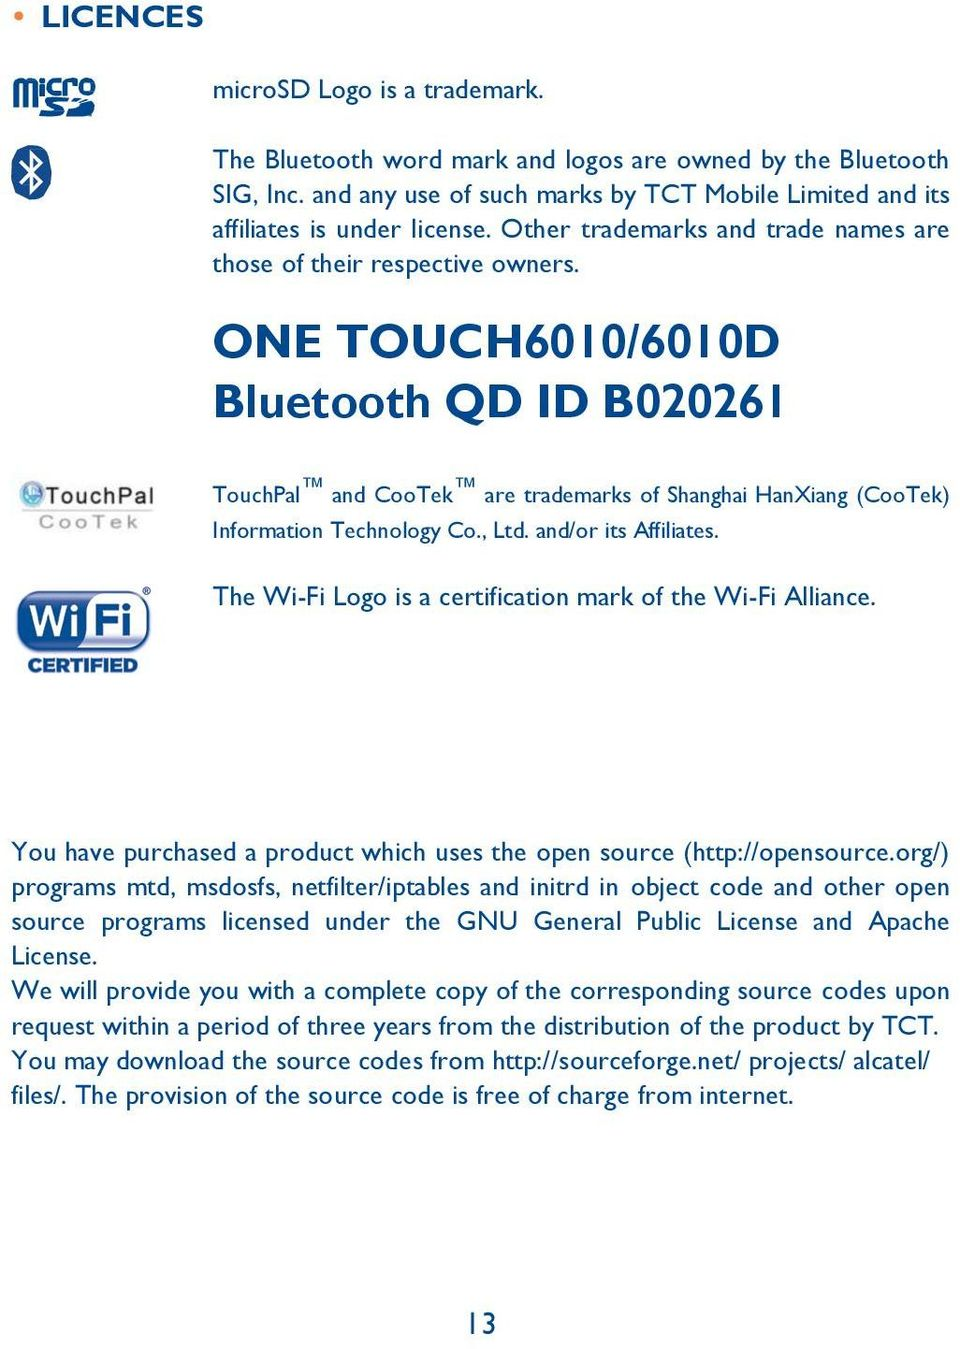 ONE TOUCH6010/6010D Bluetooth QD ID B020261 TouchPal and CooTek are trademarks of Shanghai HanXiang (CooTek) Information Technology Co., Ltd. and/or its Affiliates.